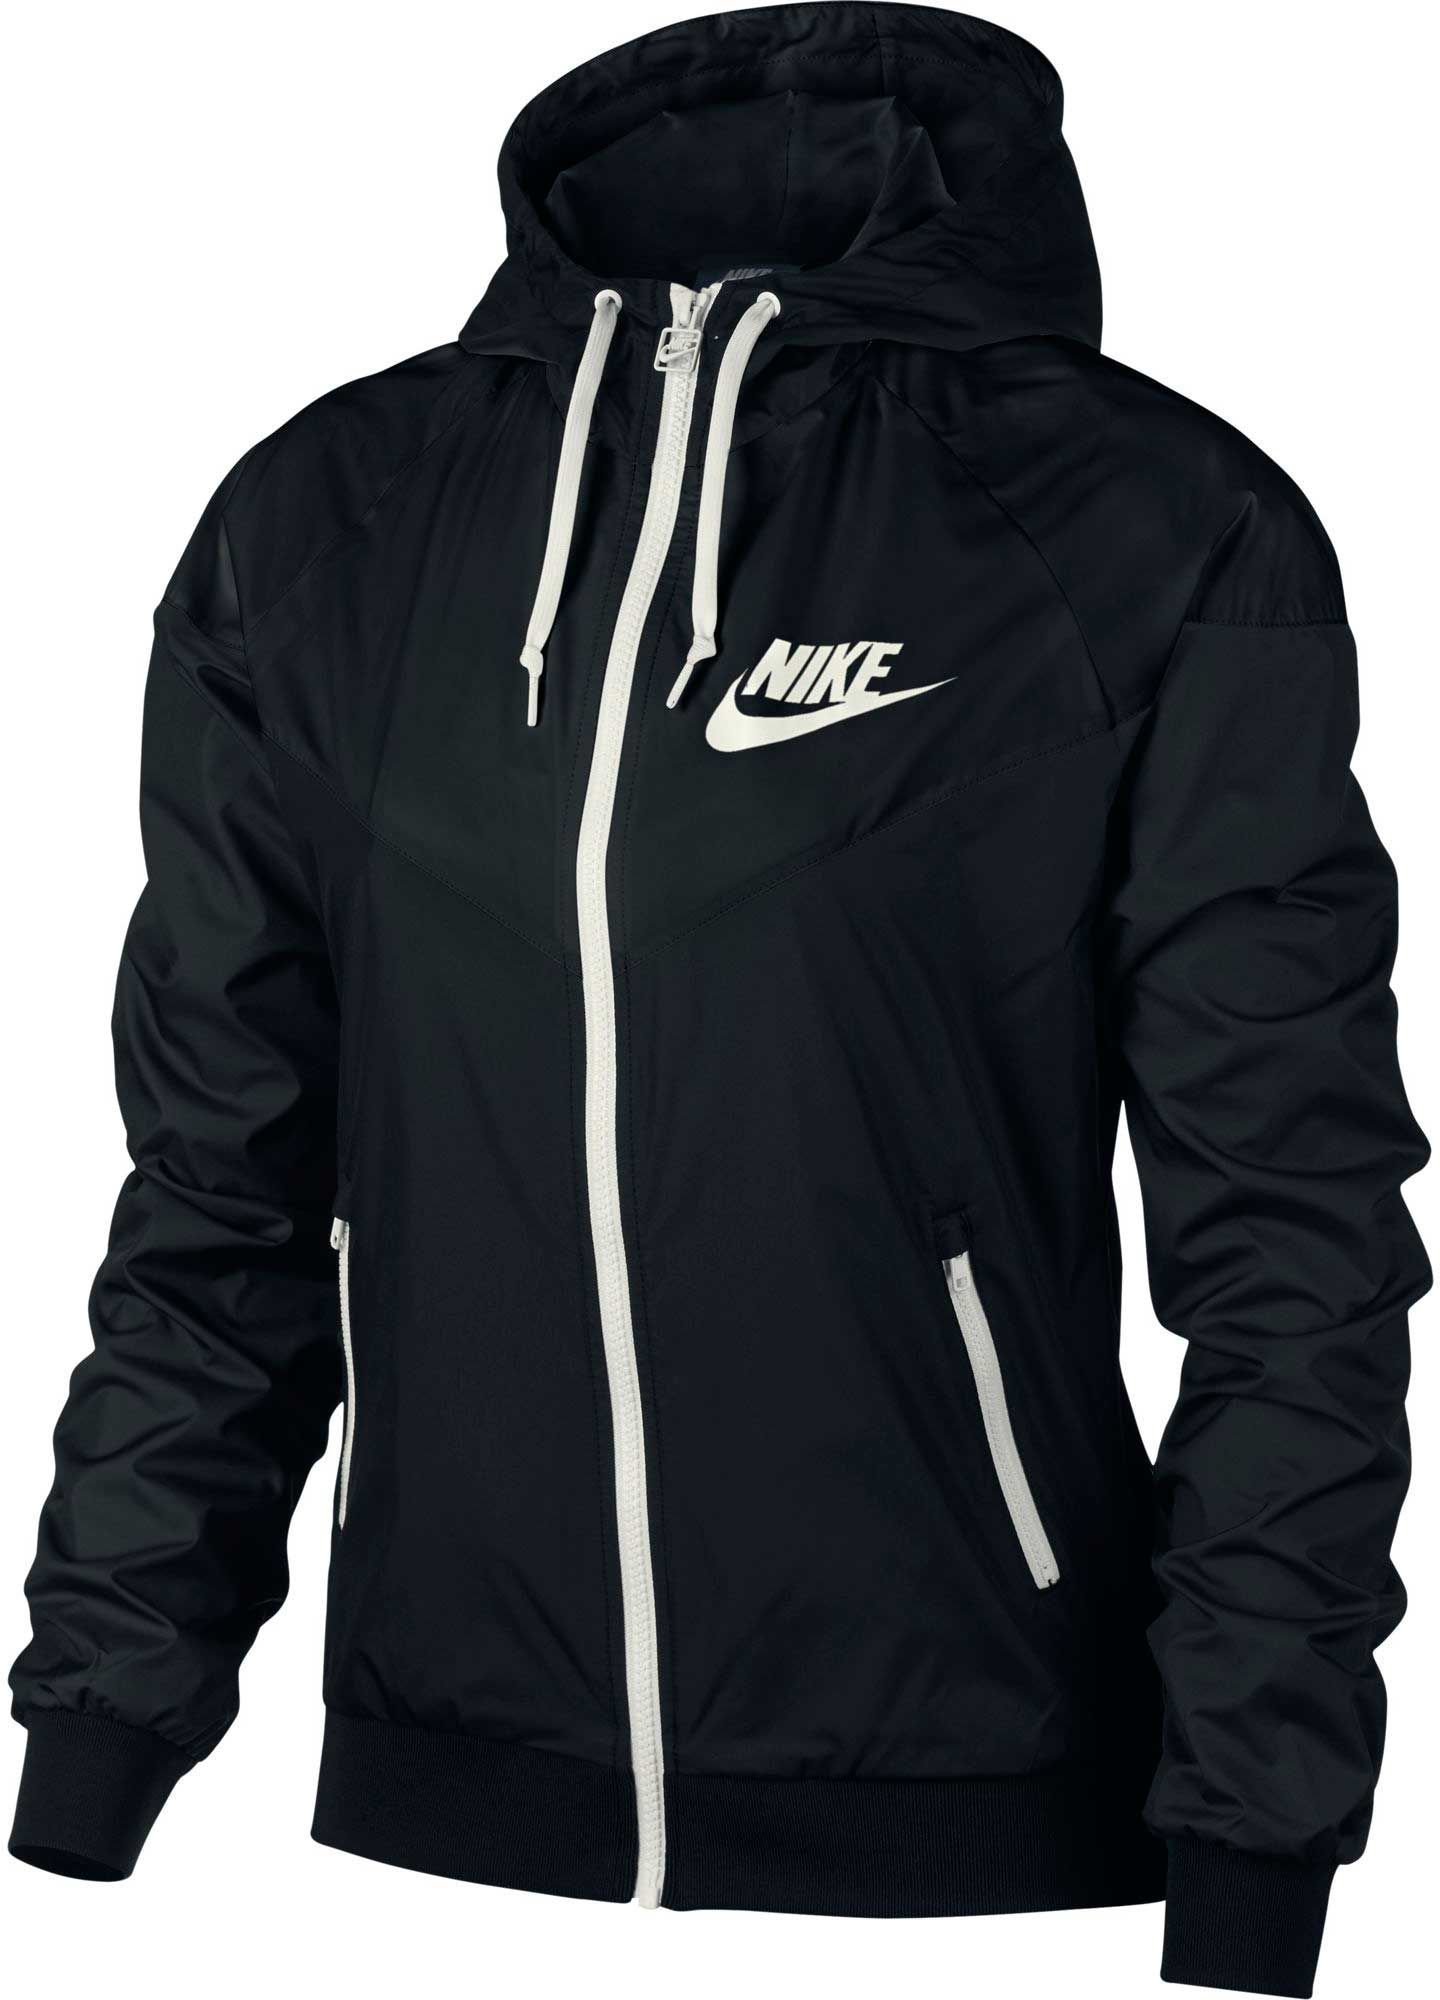 Nike Women's Sportswear Original Windrunner Jacket (Black, L)